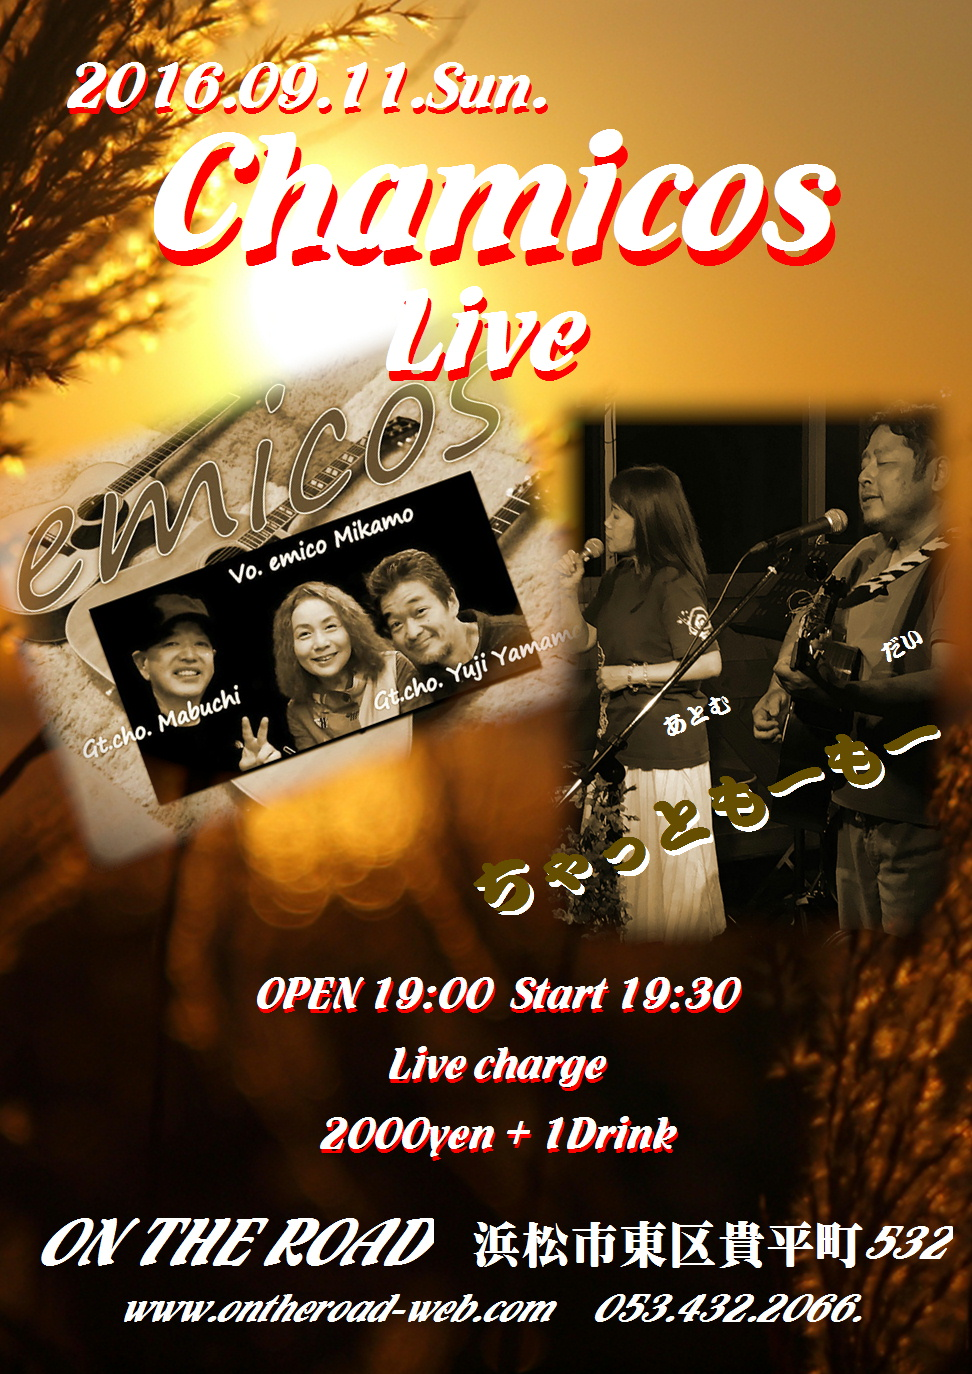 Chamicos Live